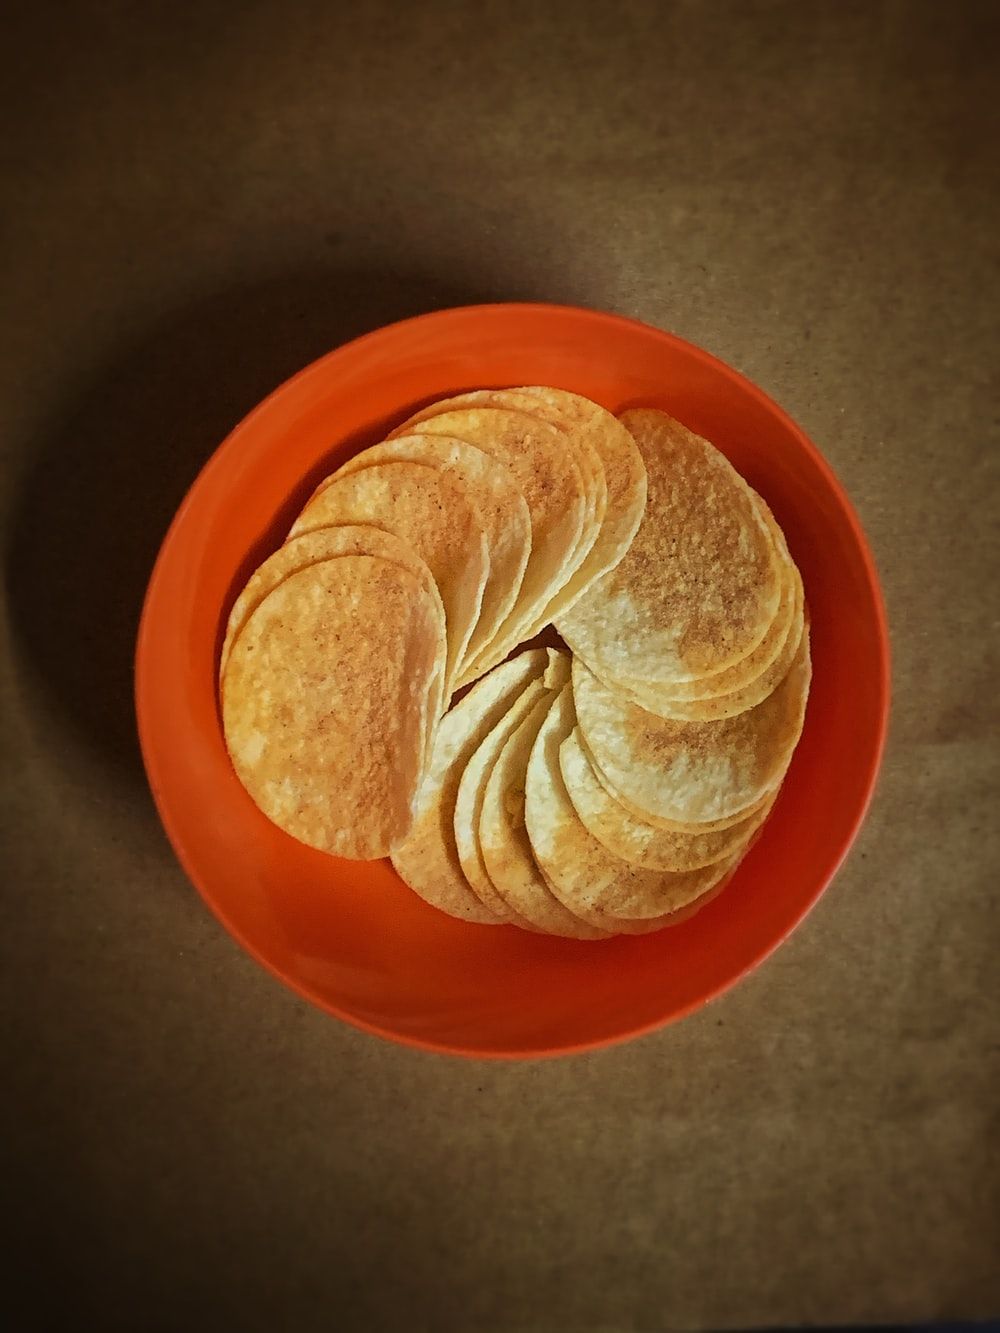 brown and white shell on orange round plate